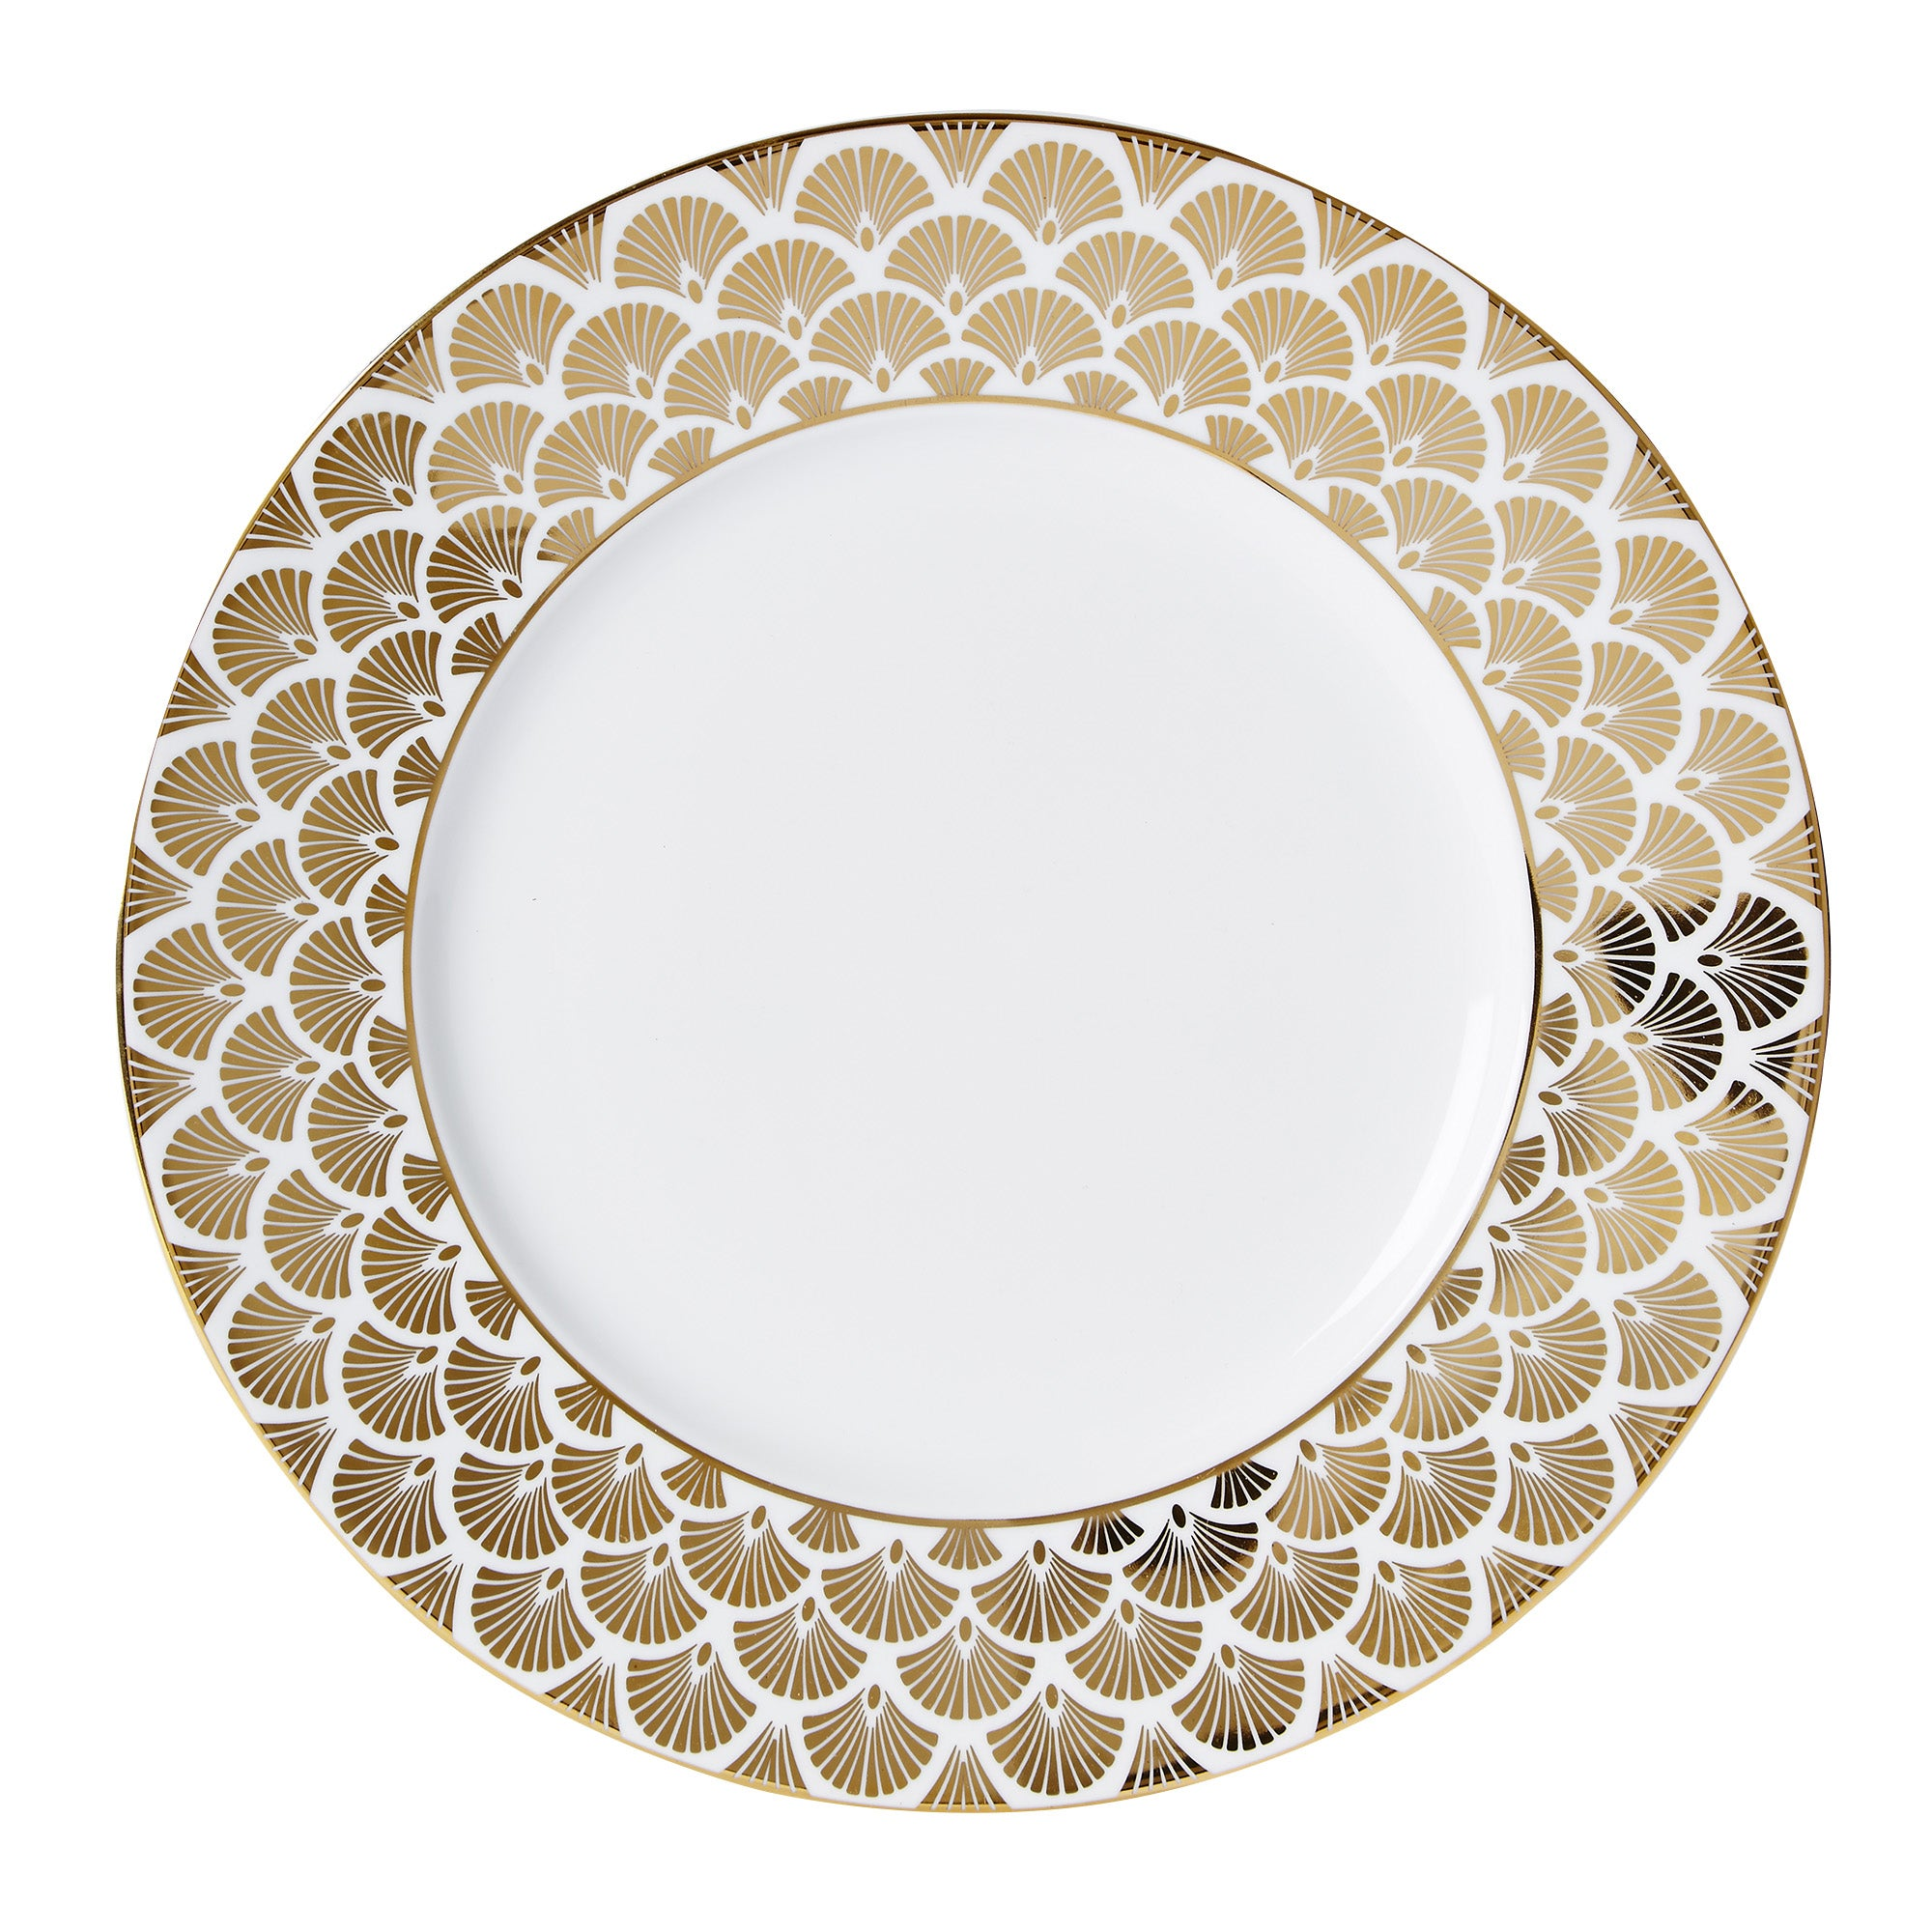 Image of 5A Fifth Avenue Bergen Gold Dinner Plate Gold